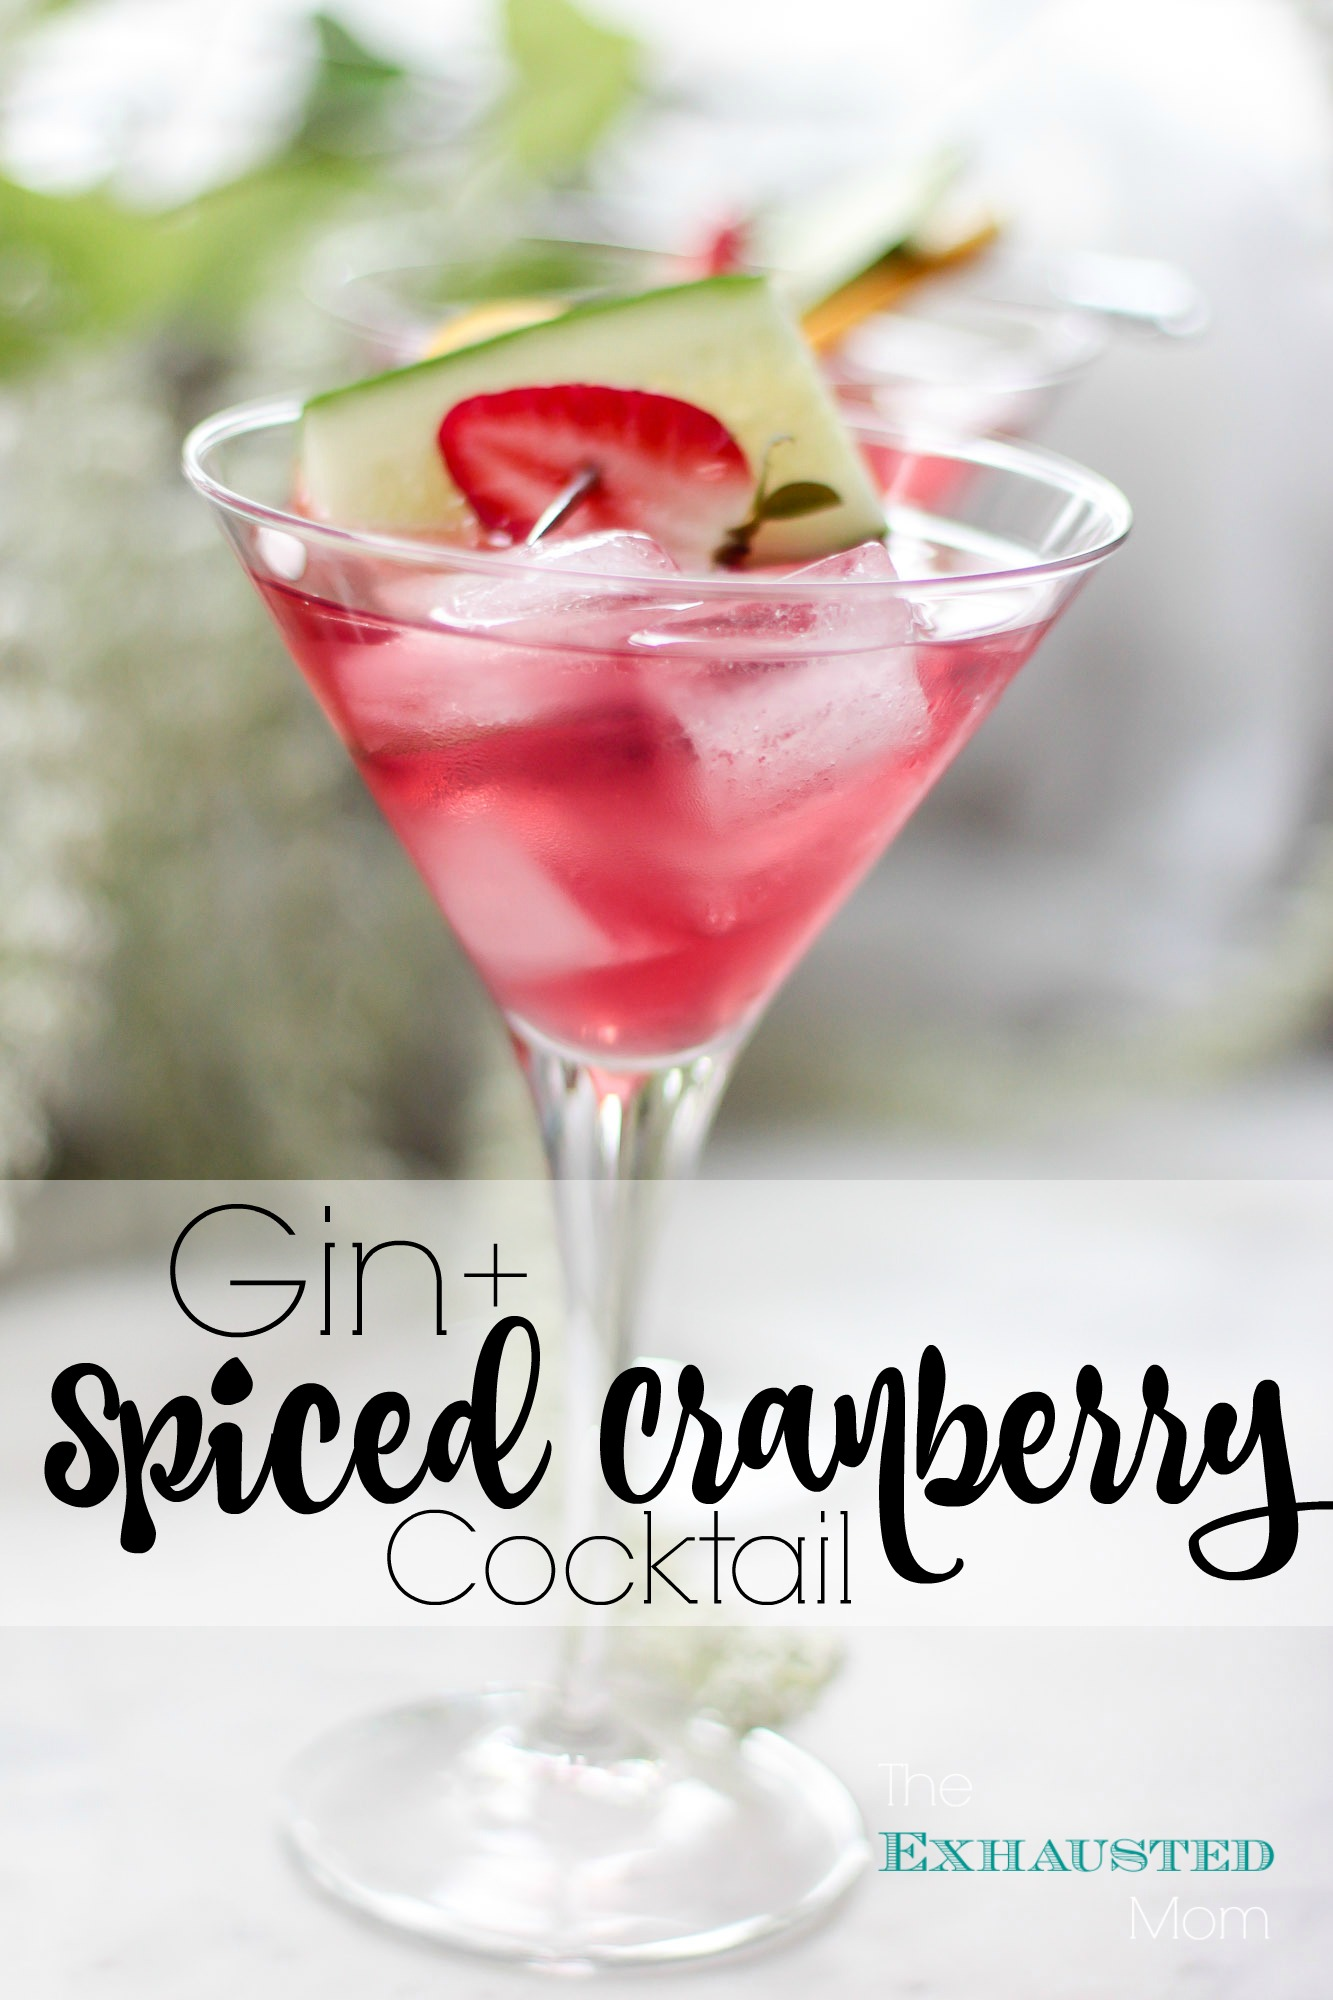 Gin + Spiced Cranberry Cocktail